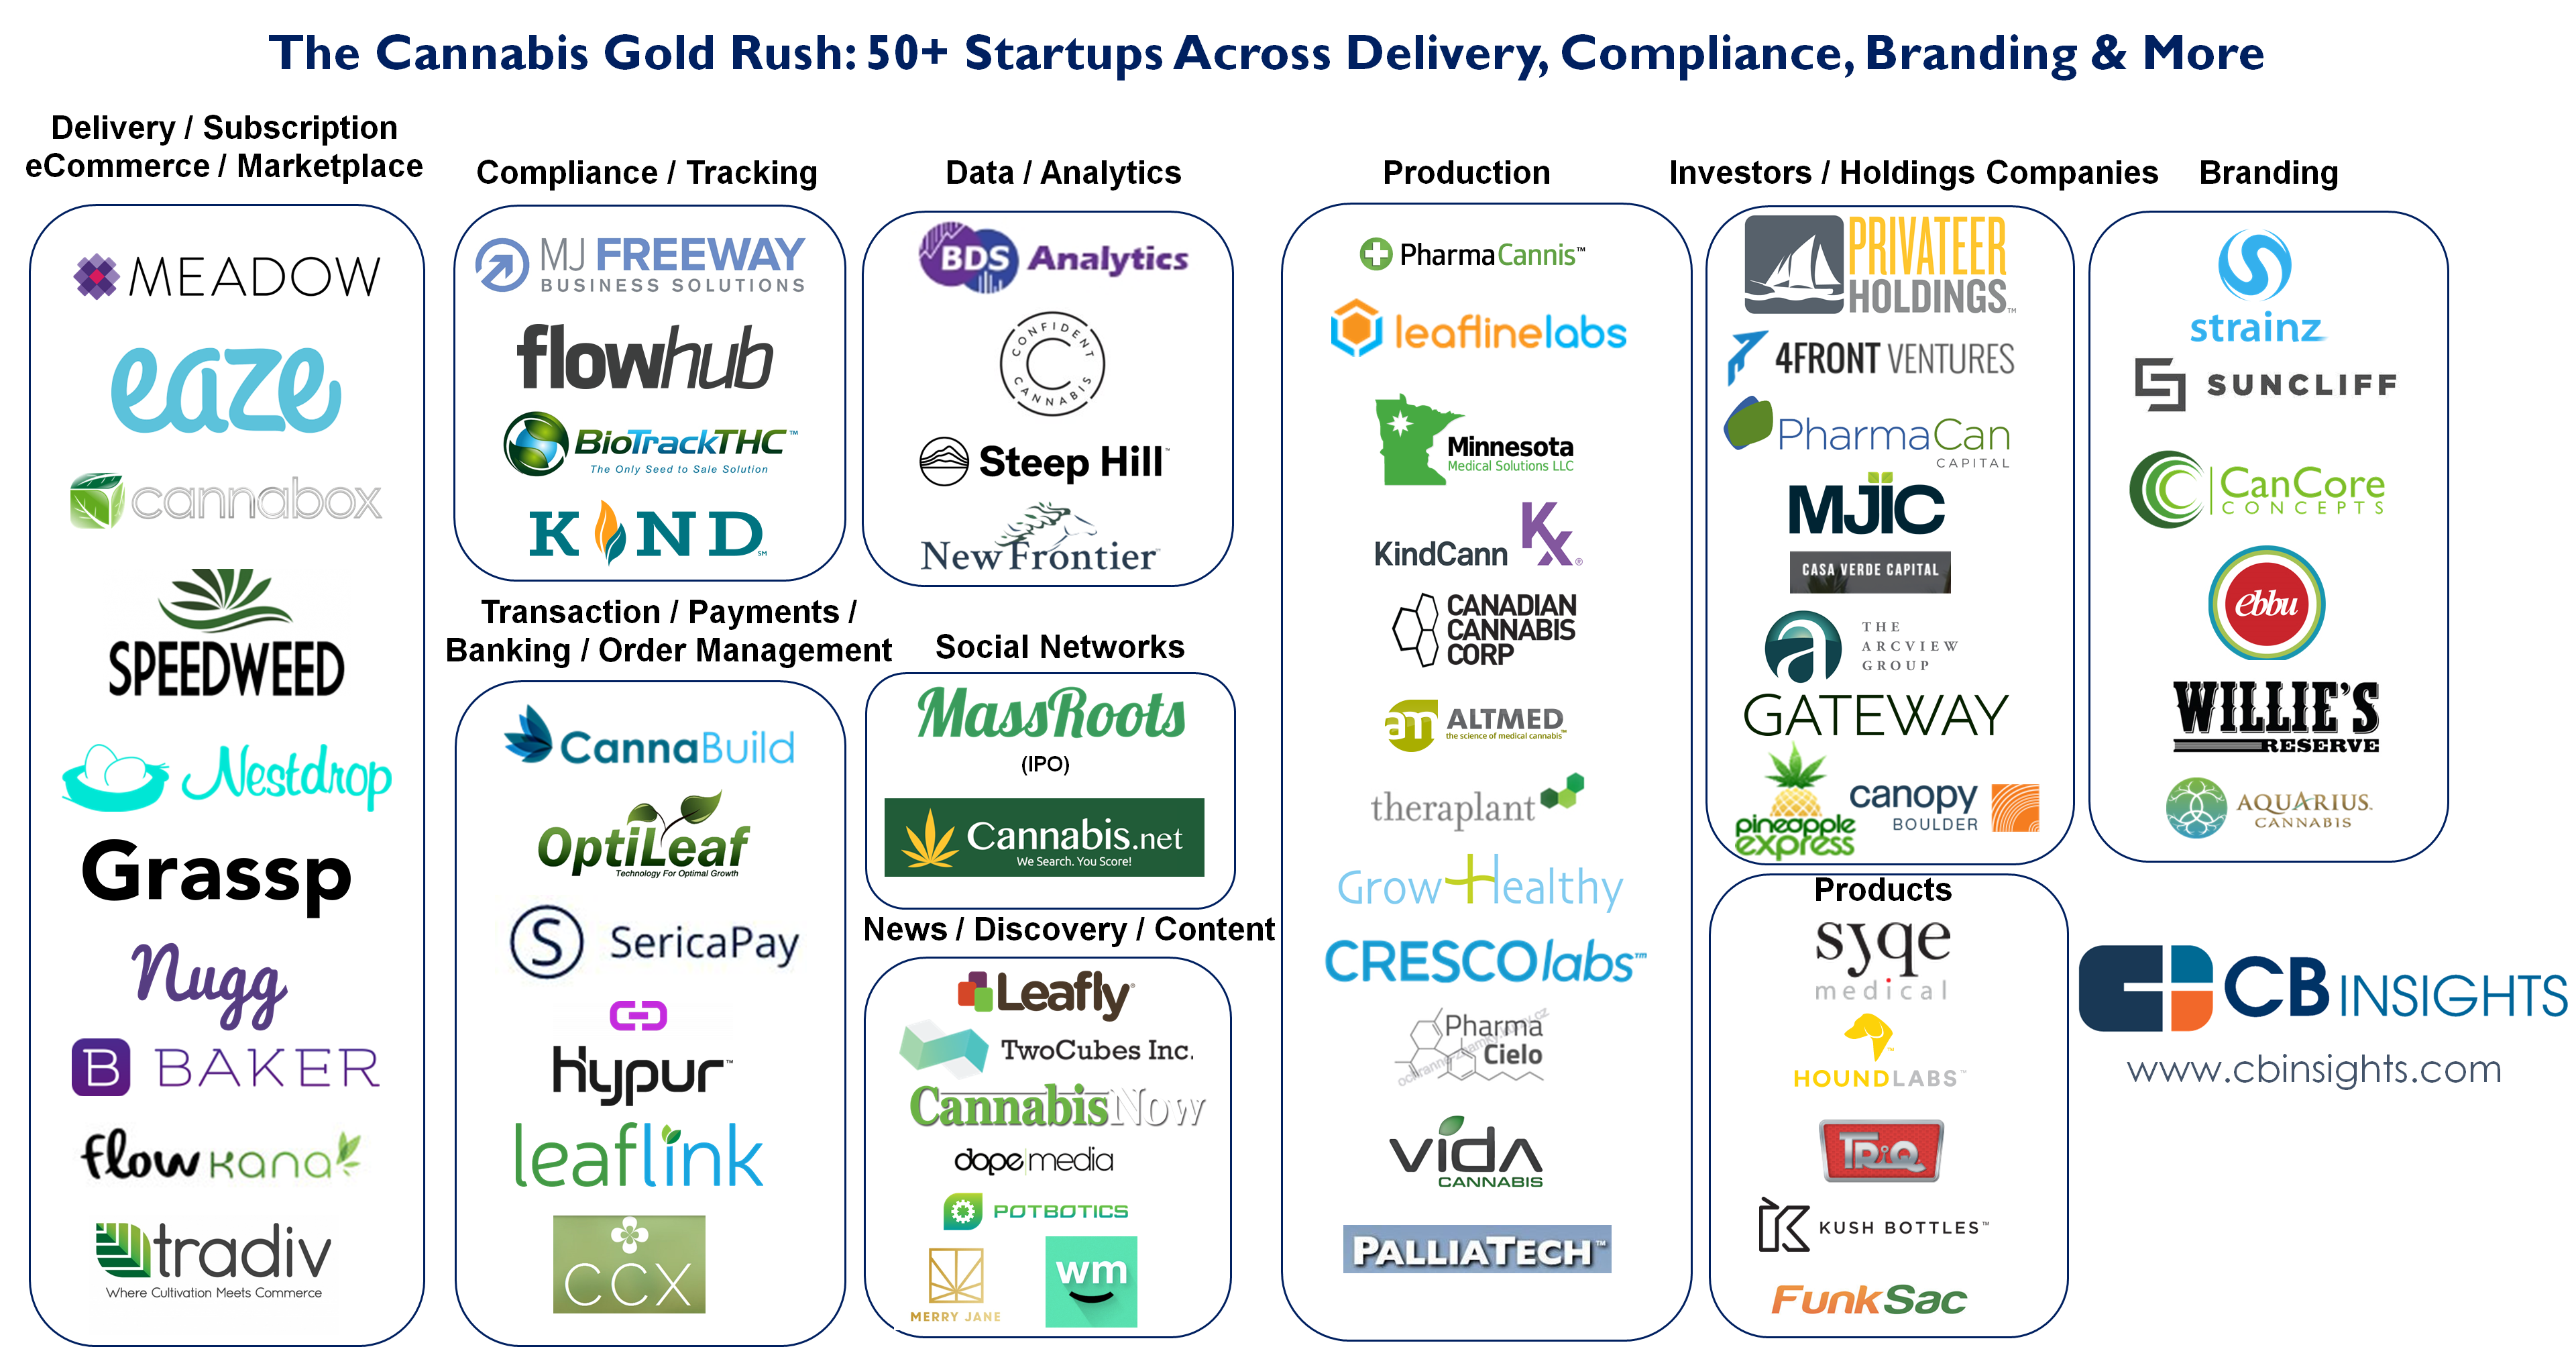 The Cannabis Gold Rush 50 Startups Across Delivery